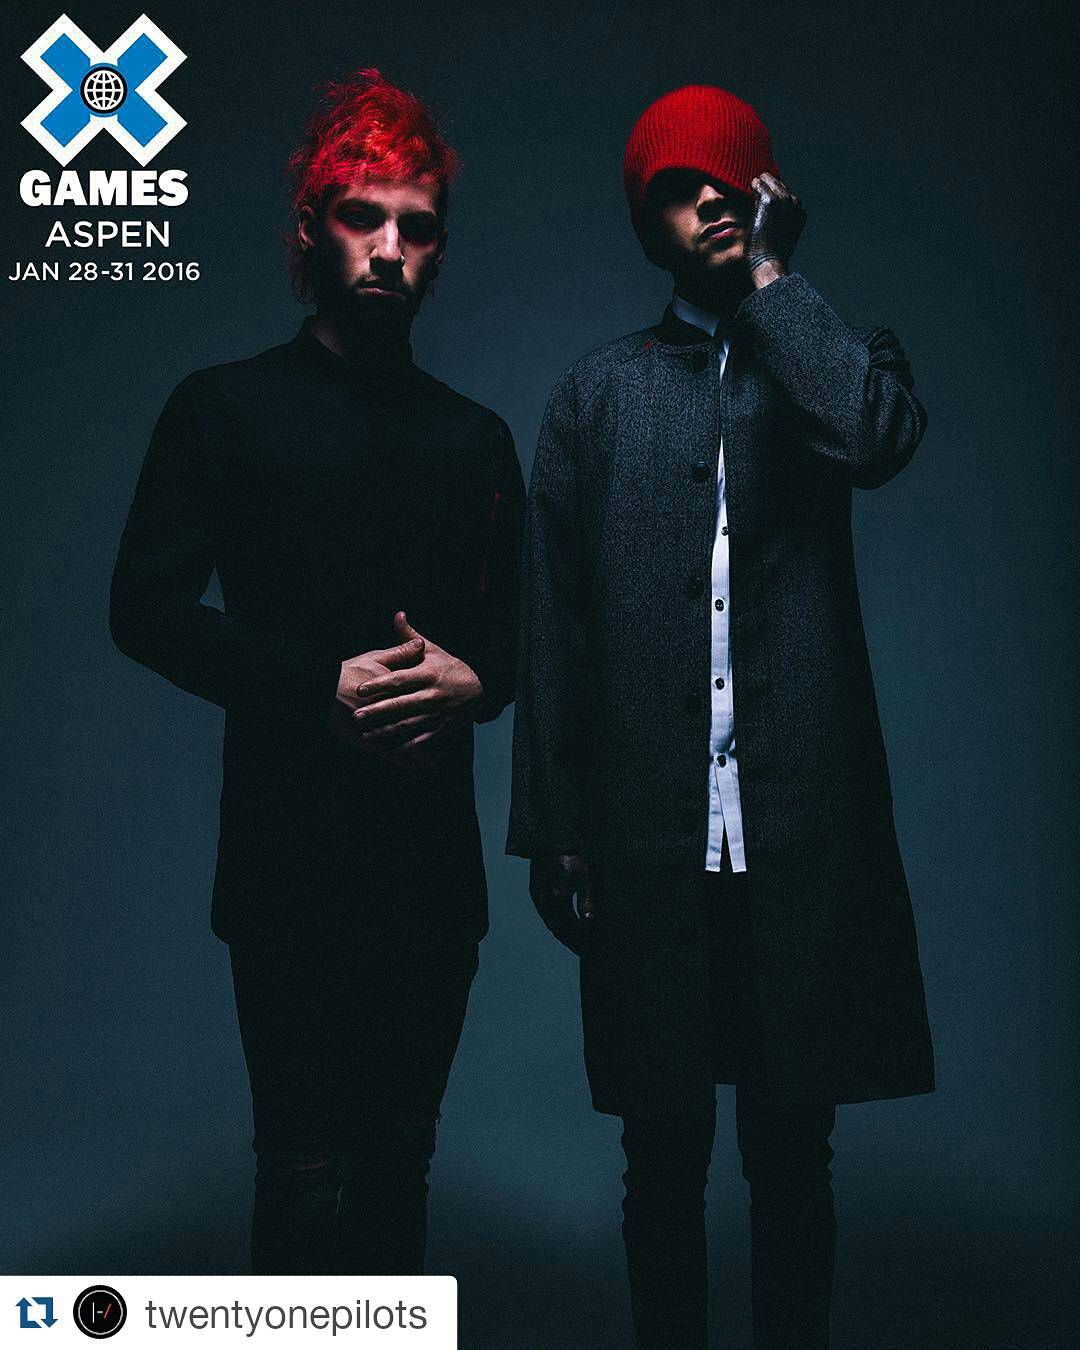 @twentyonepilots is gonna turn #XGames Aspen upside down on Fri., Jan. 29!  Tickets are on sale now at XGames.com.